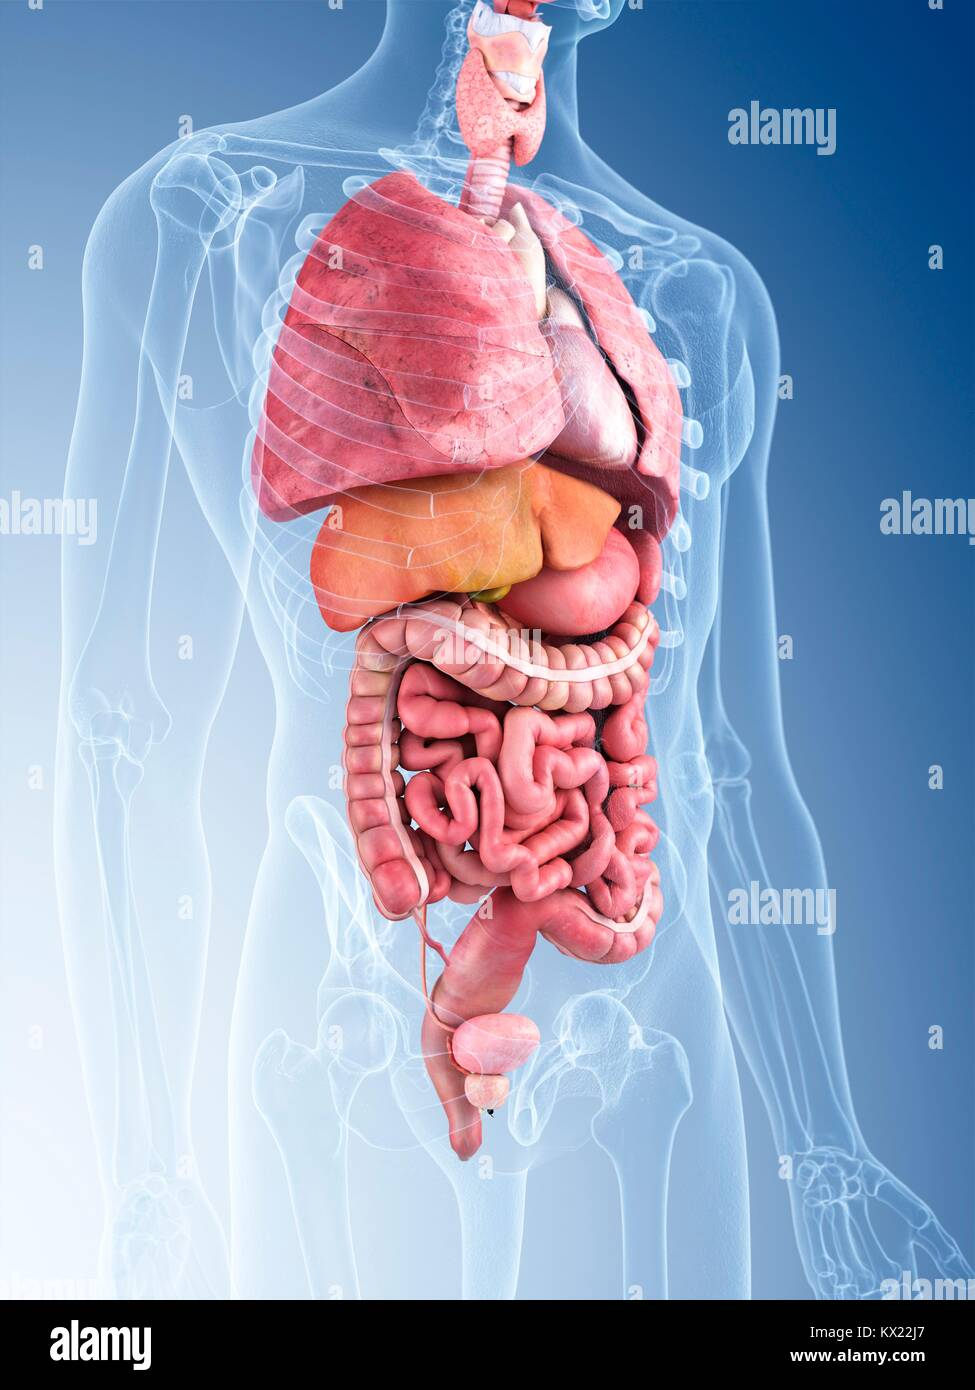 Human Internal Organs Stock Photos & Human Internal Organs Stock ...